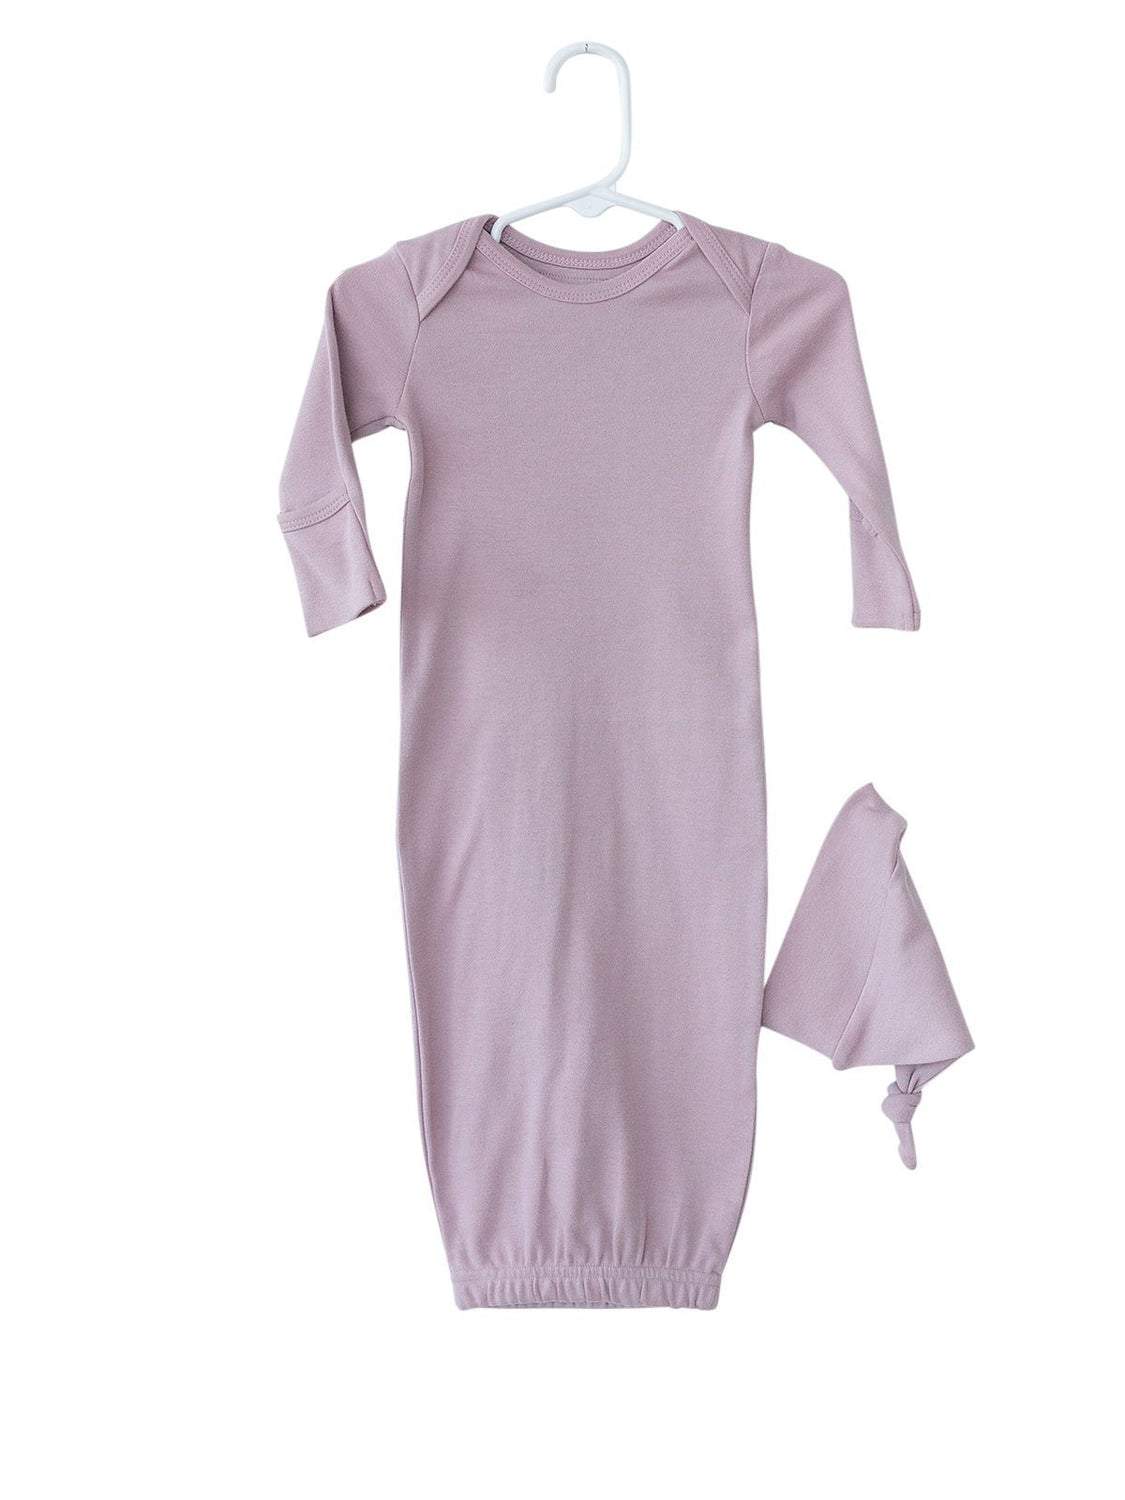 Organic Cotton Baby Sleeper Gown Set - Solid Colors